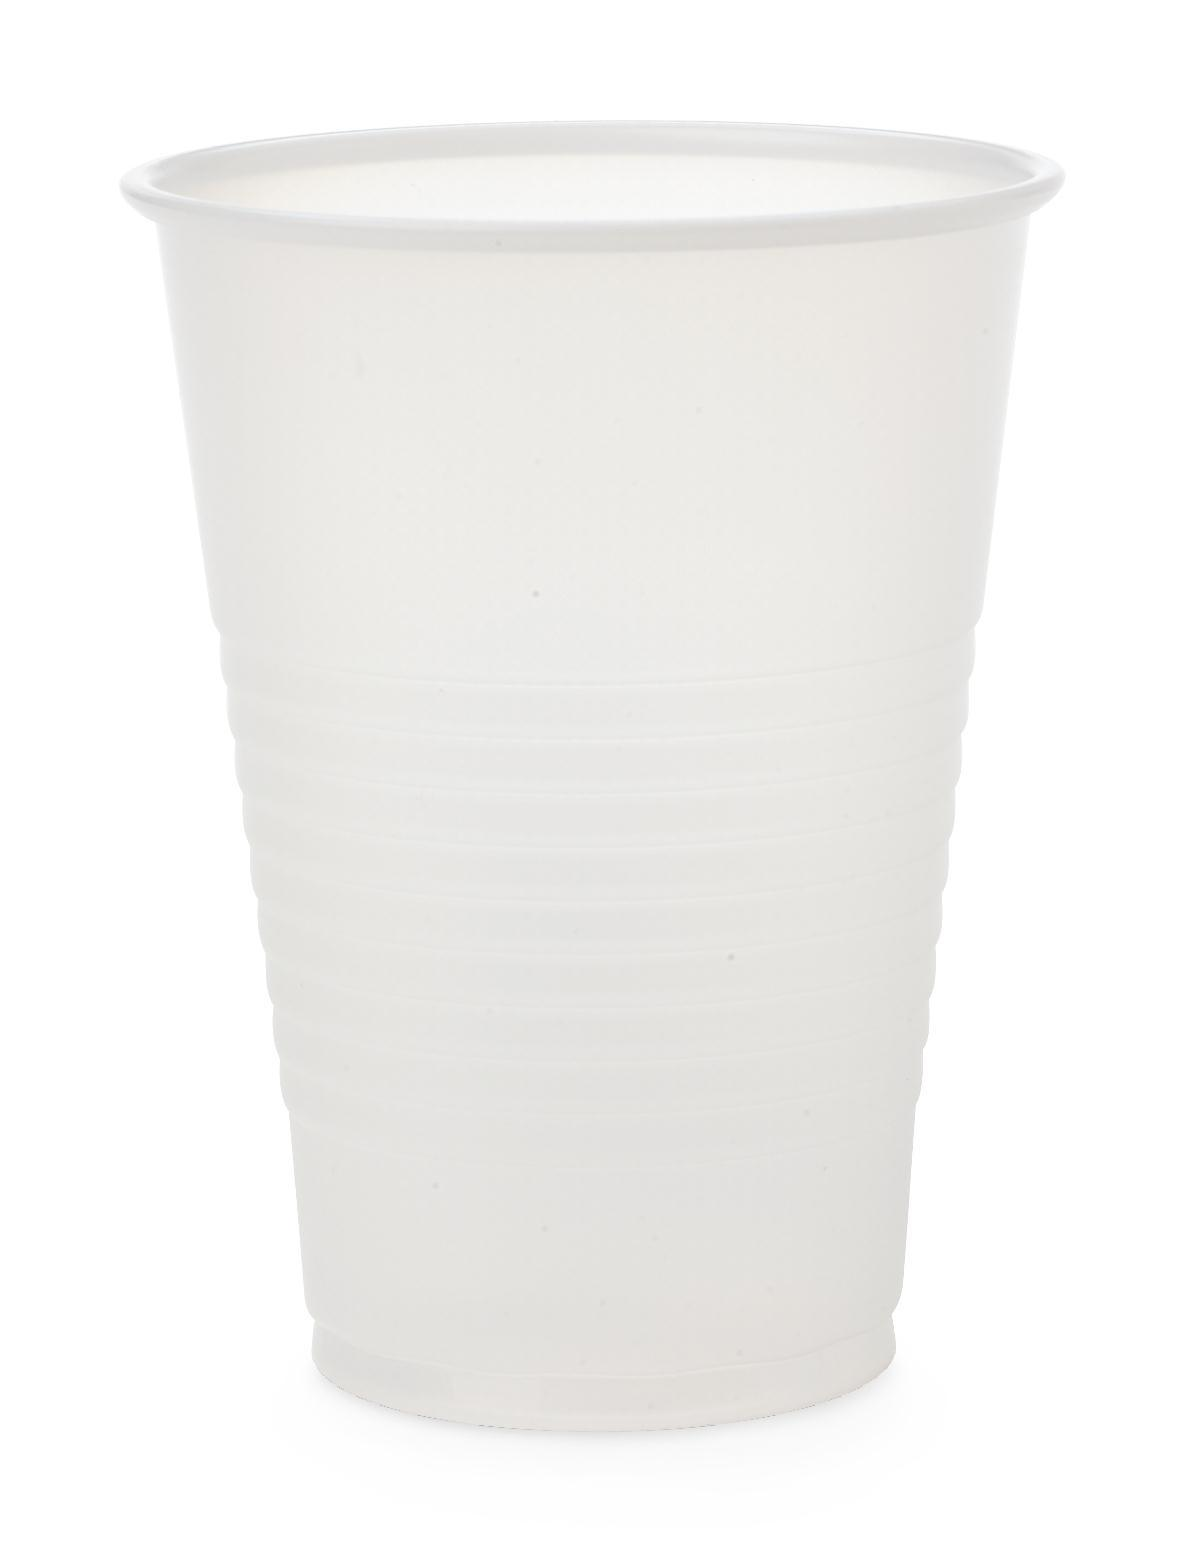 Nursing Supplies & Patient Care Food Service Drinking Cups & Glasses Cups & Glasses - Non03007 - Cup Plastic 7 Oz Translucent NON03007